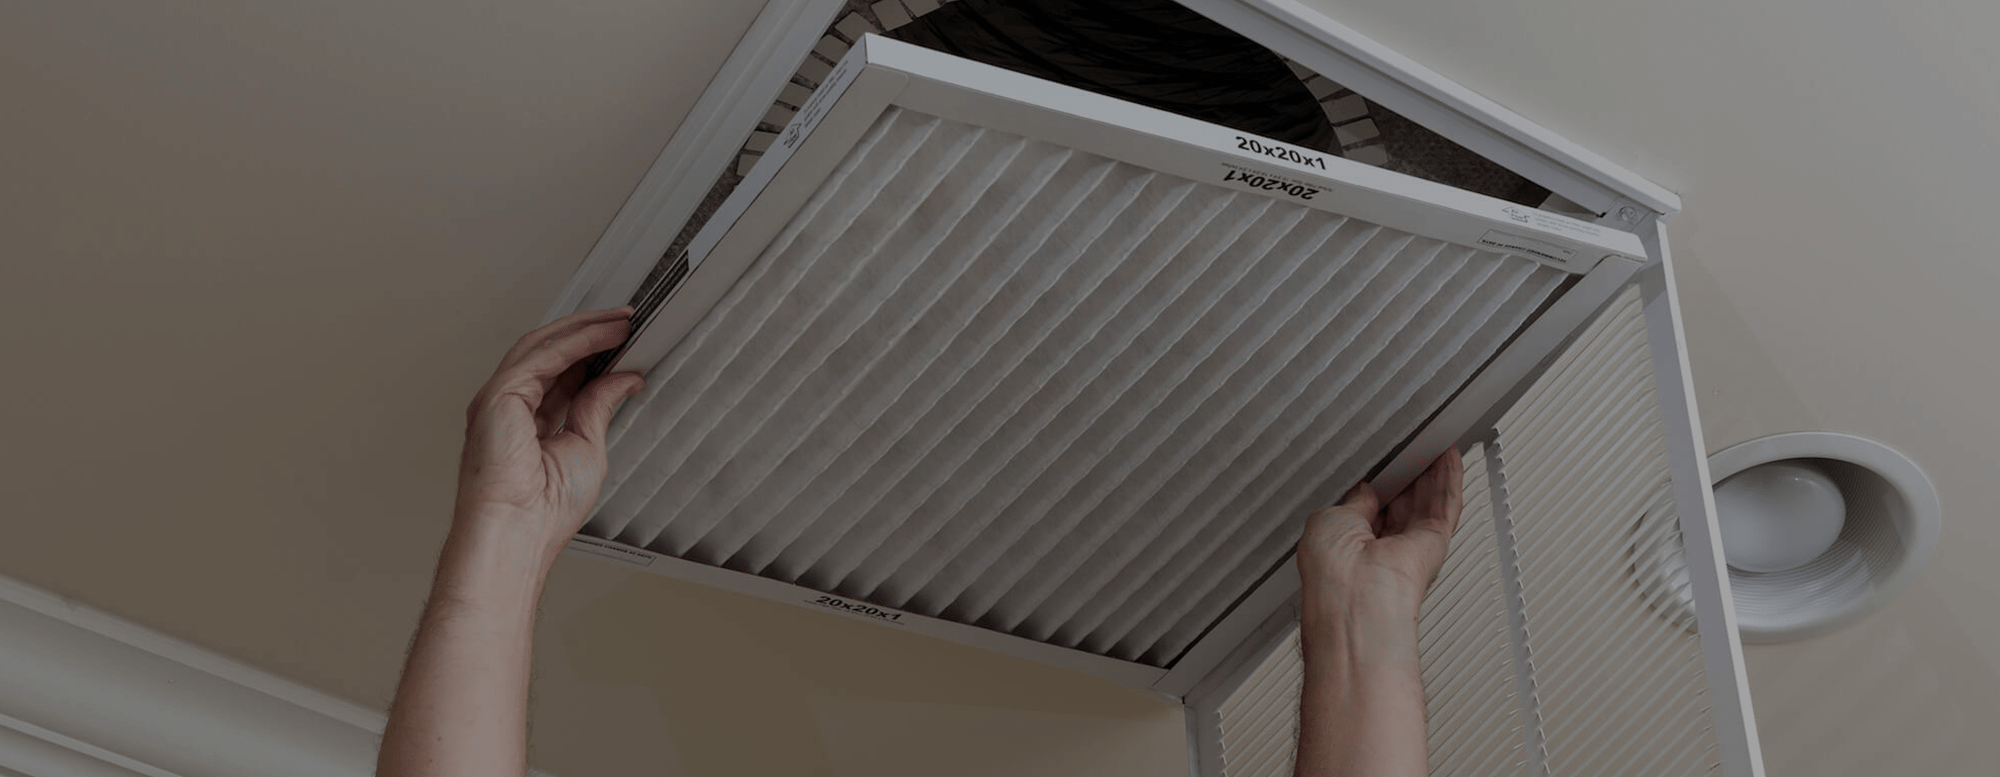 Changing Filters | Stiles Heating & Cooling